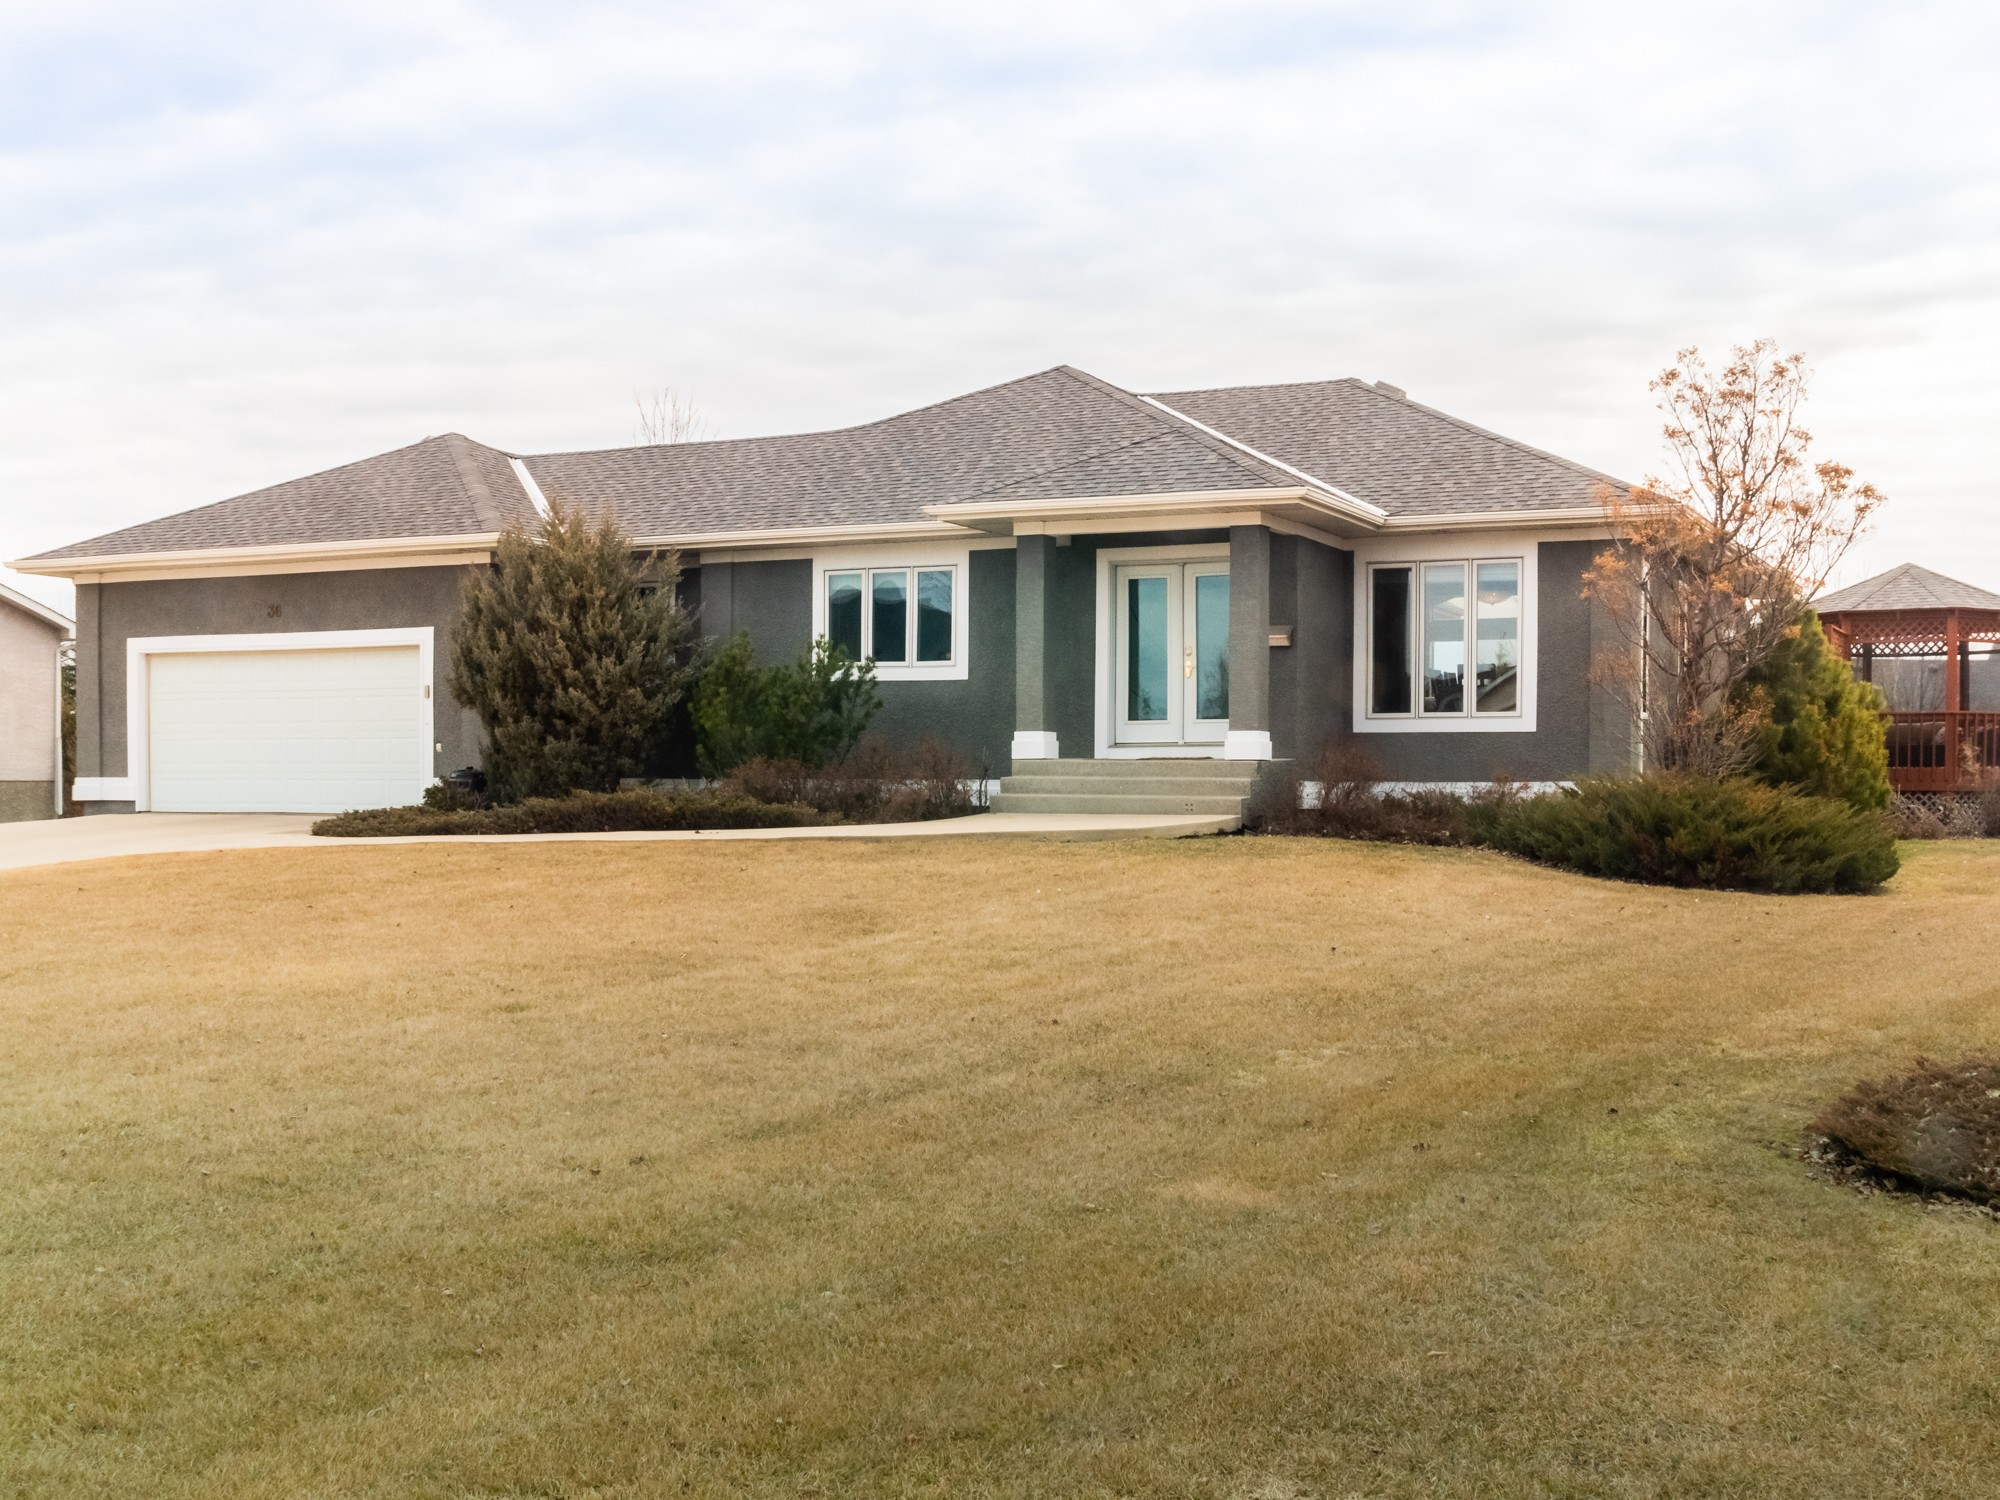 35-marston-dr-winnipeg-for-sale-bobby-wall-winnipeg-realtor